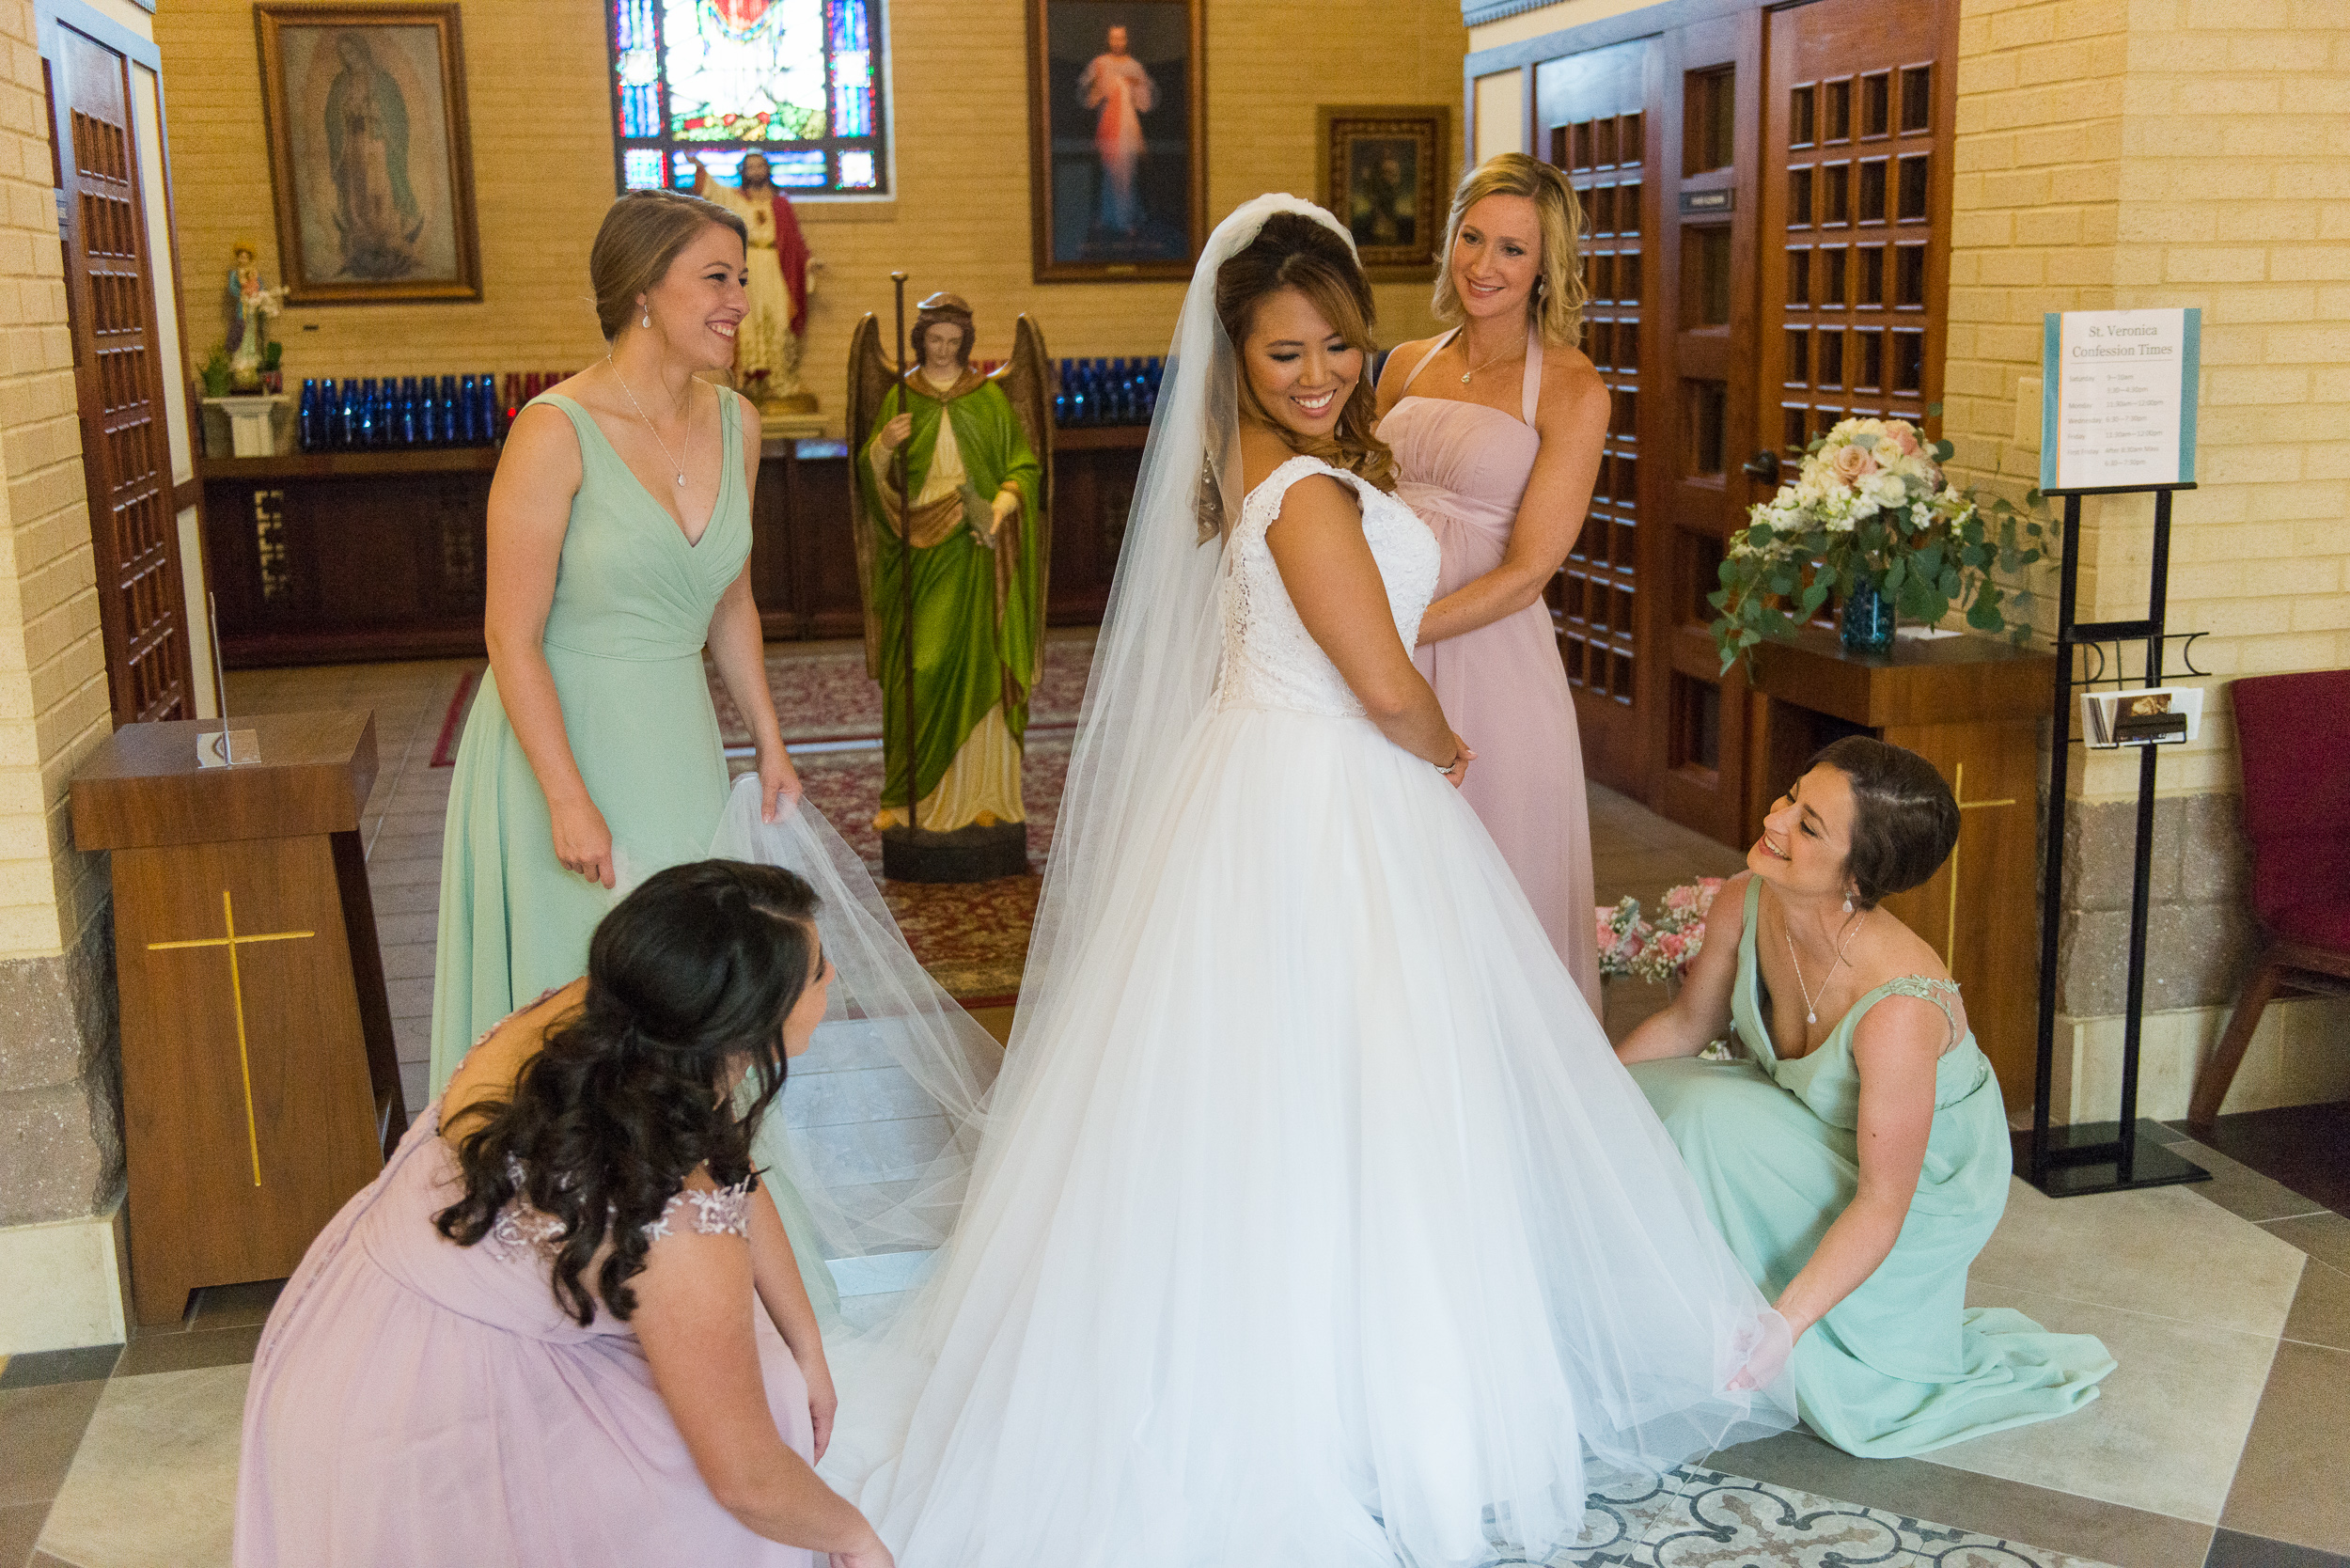 A bride surrounded by her bridesmaids before her wedding at St. Veronica Catholic Church in Chantilly, Virginia